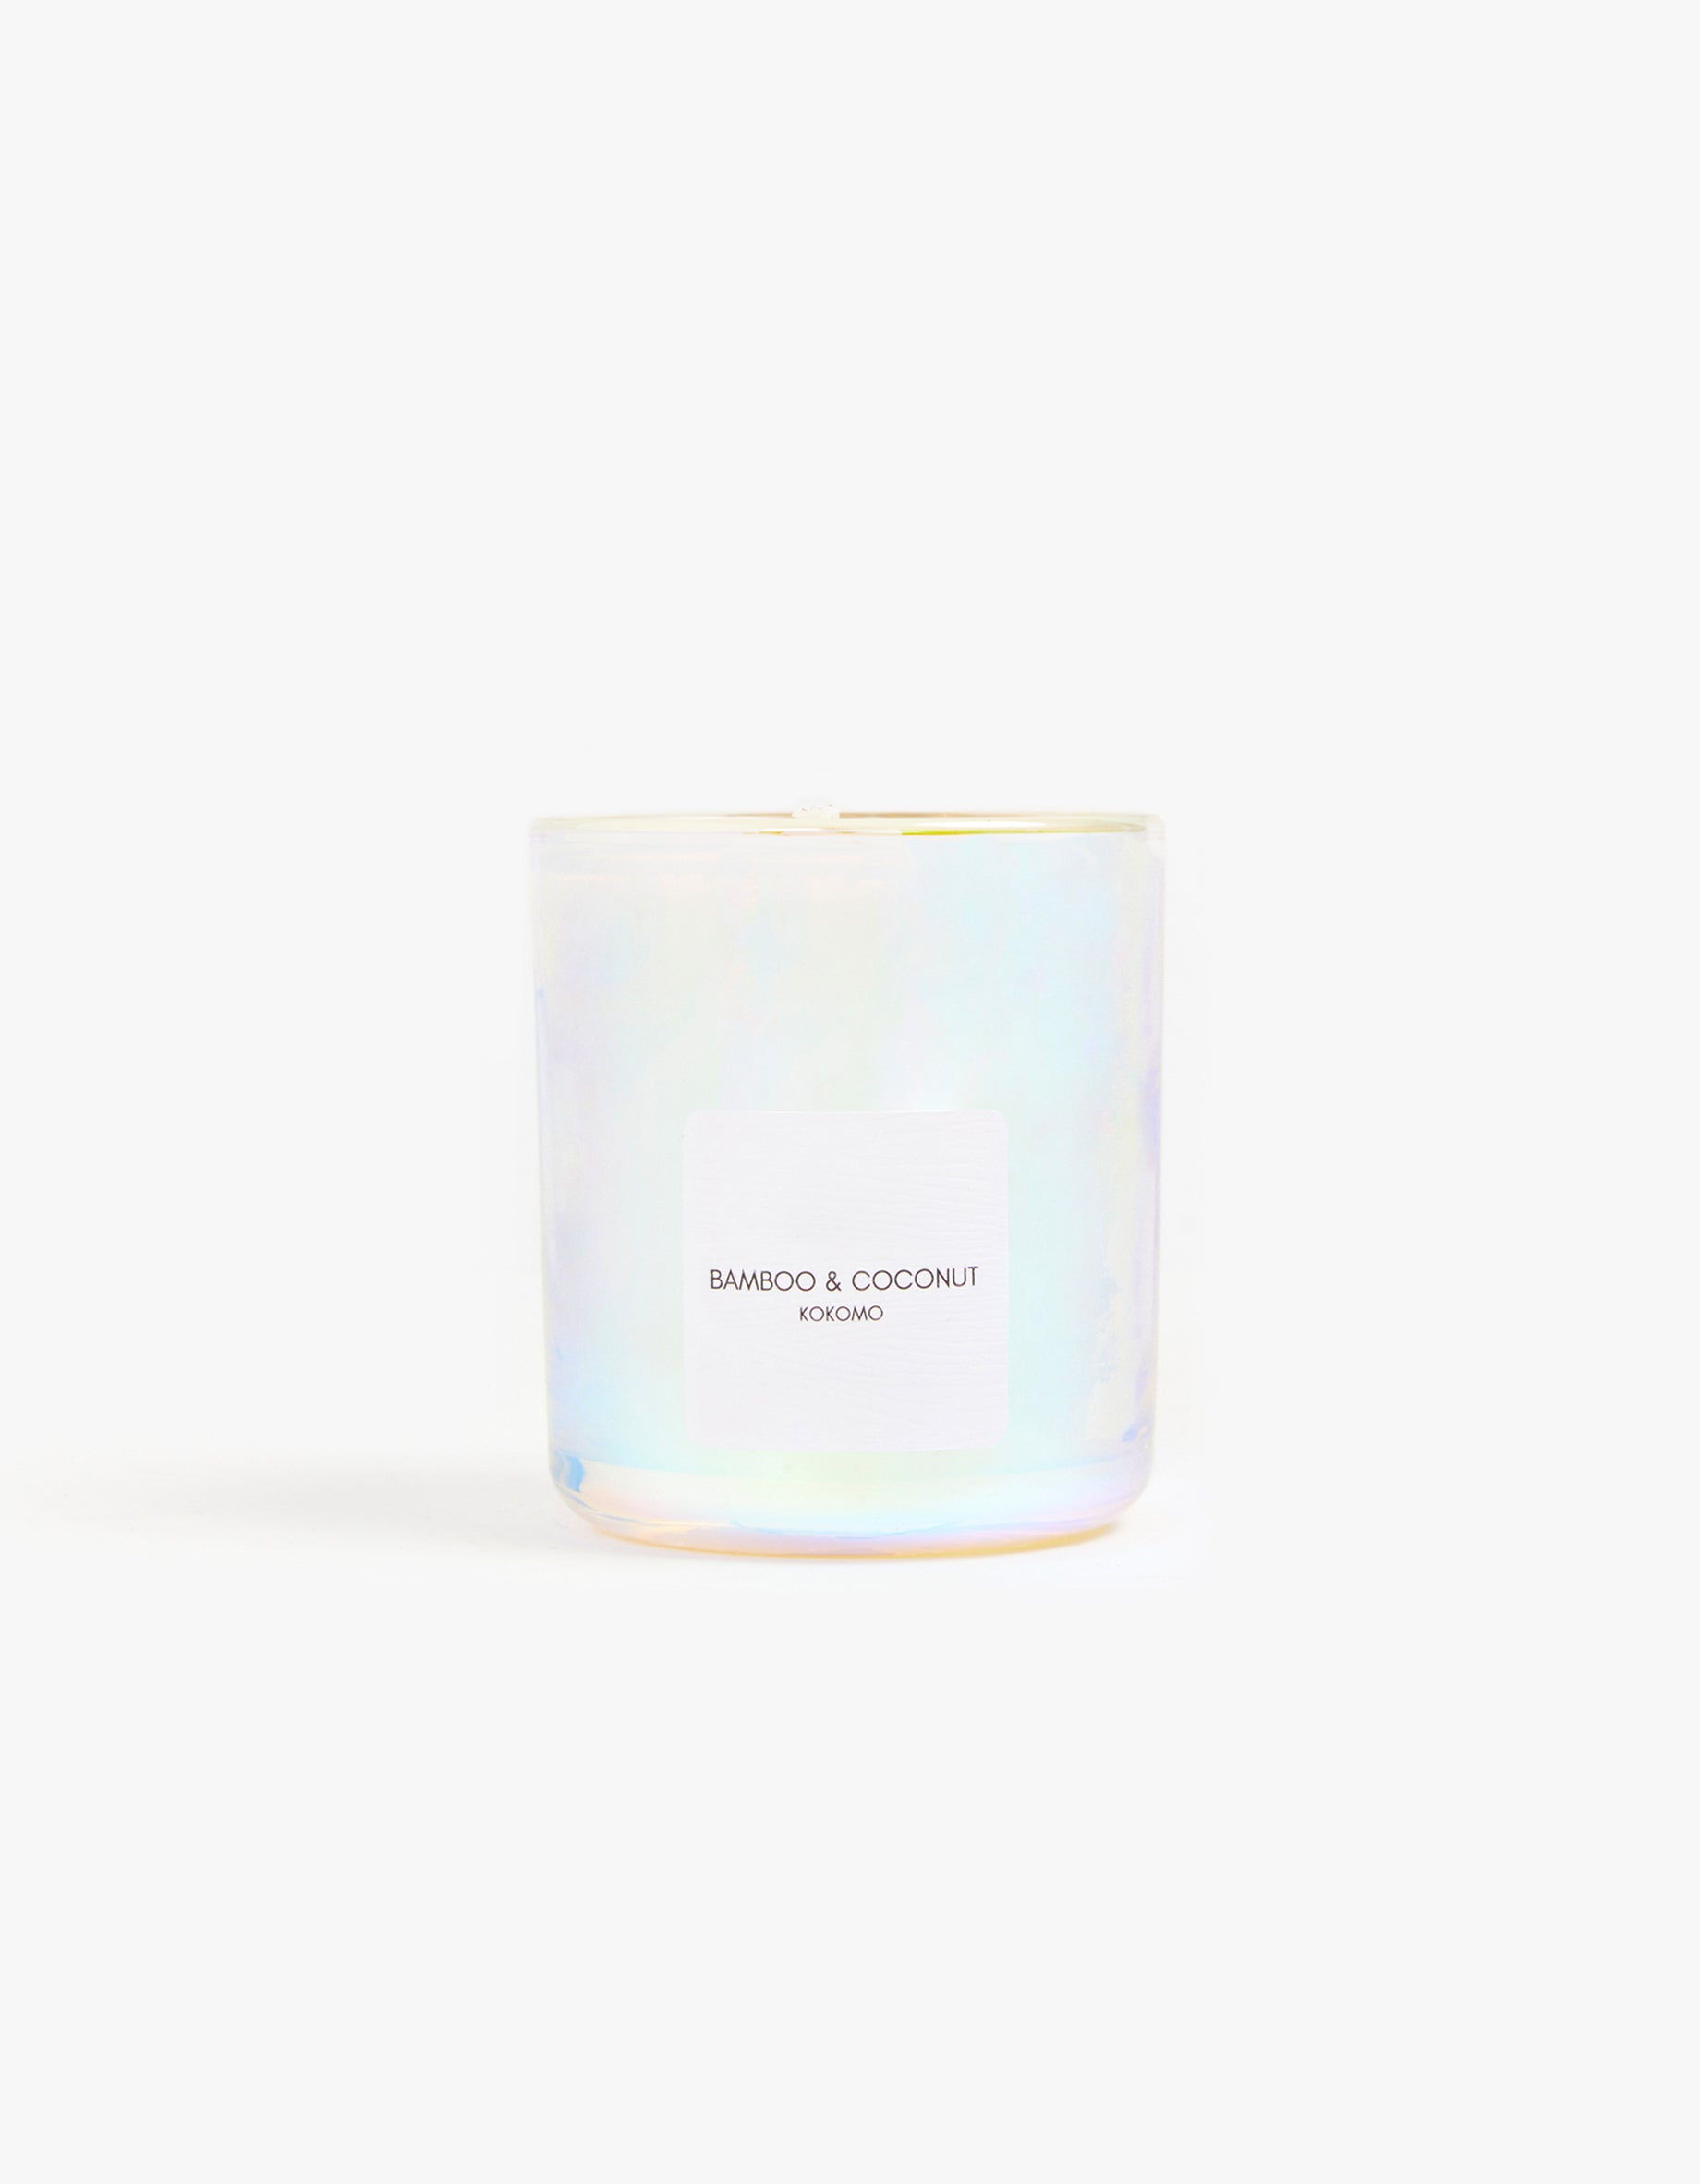 Bamboo & Coconut Candle - Holographic